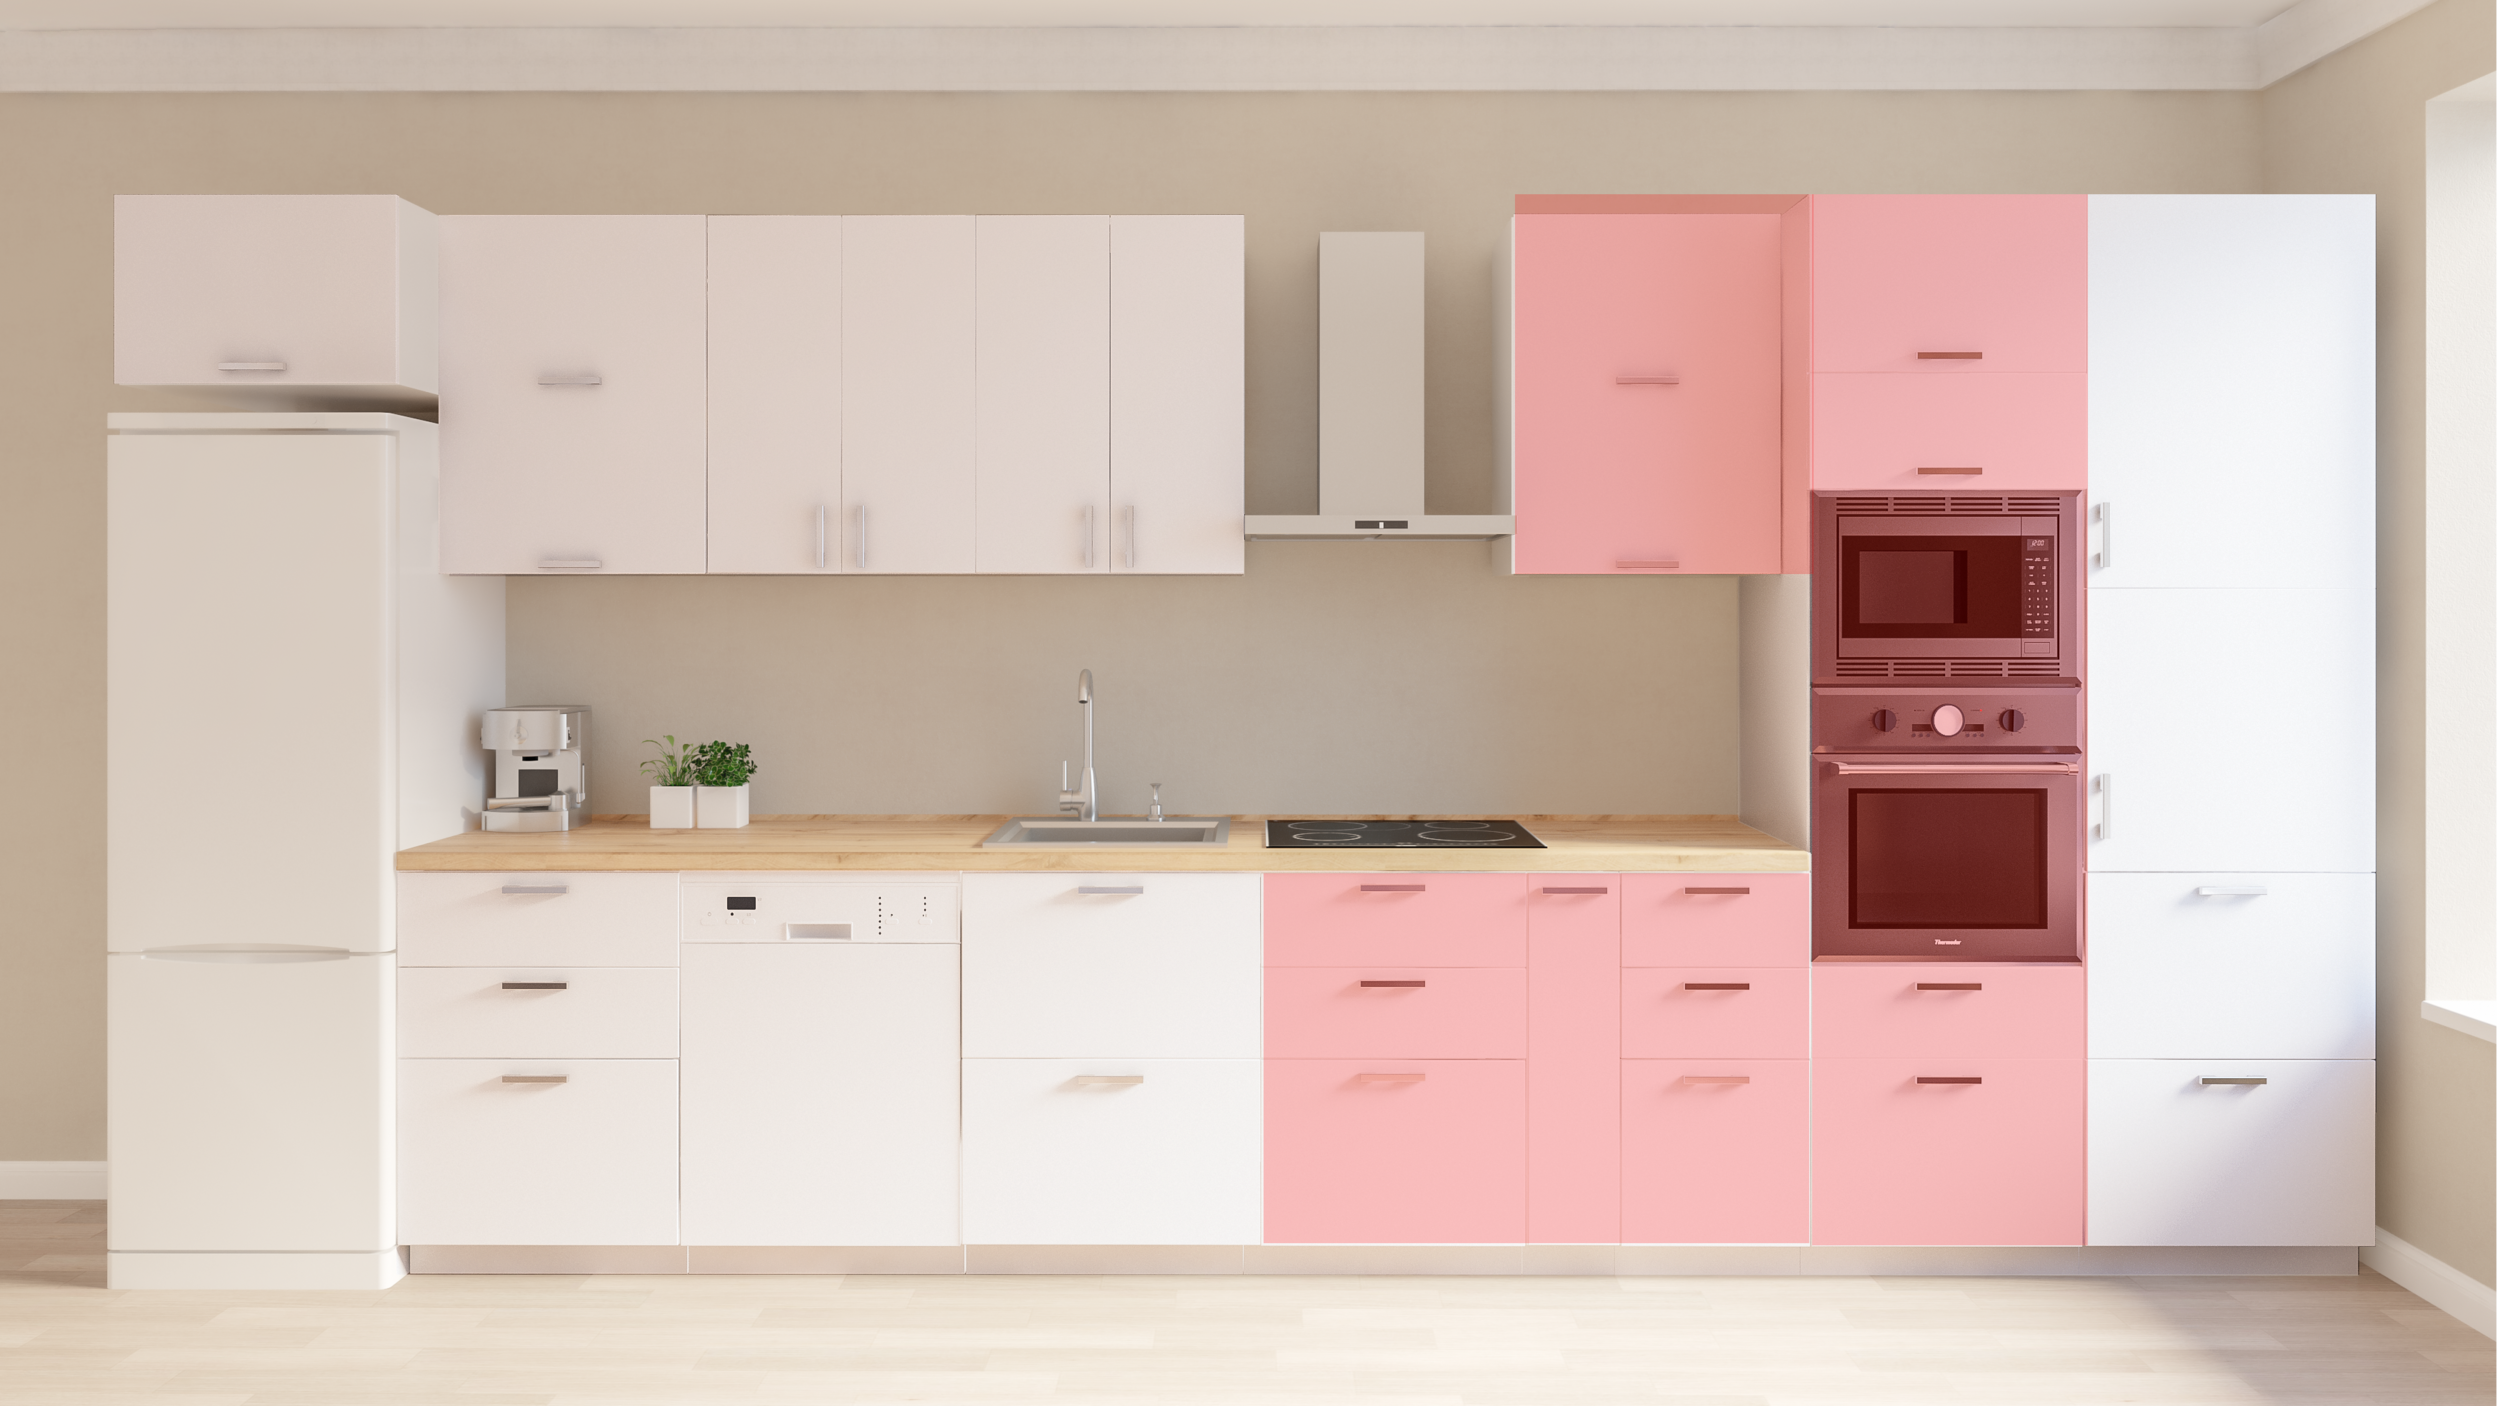 COOKING - This zone traditionally is marked red and also includes storage spaces for pans, saucepans, pots, casseroles, baking plates and utensils.